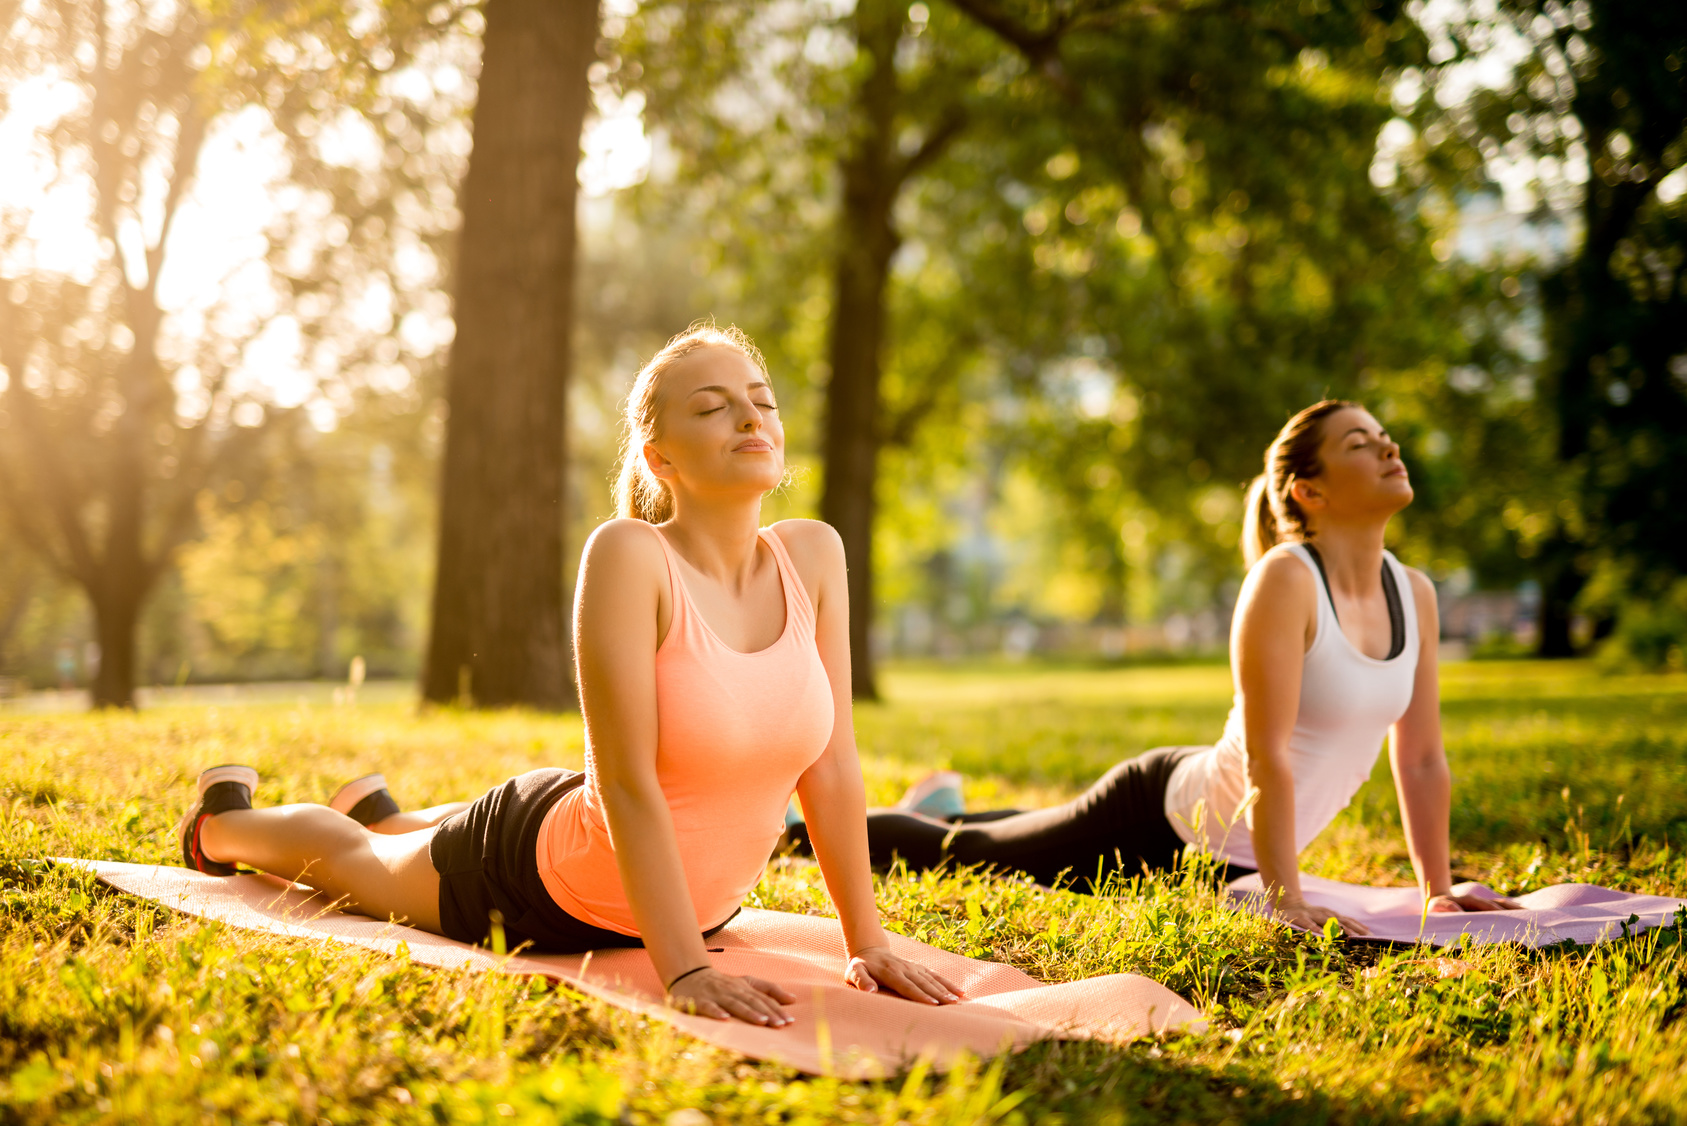 Women doing yoga outdoors in the park.